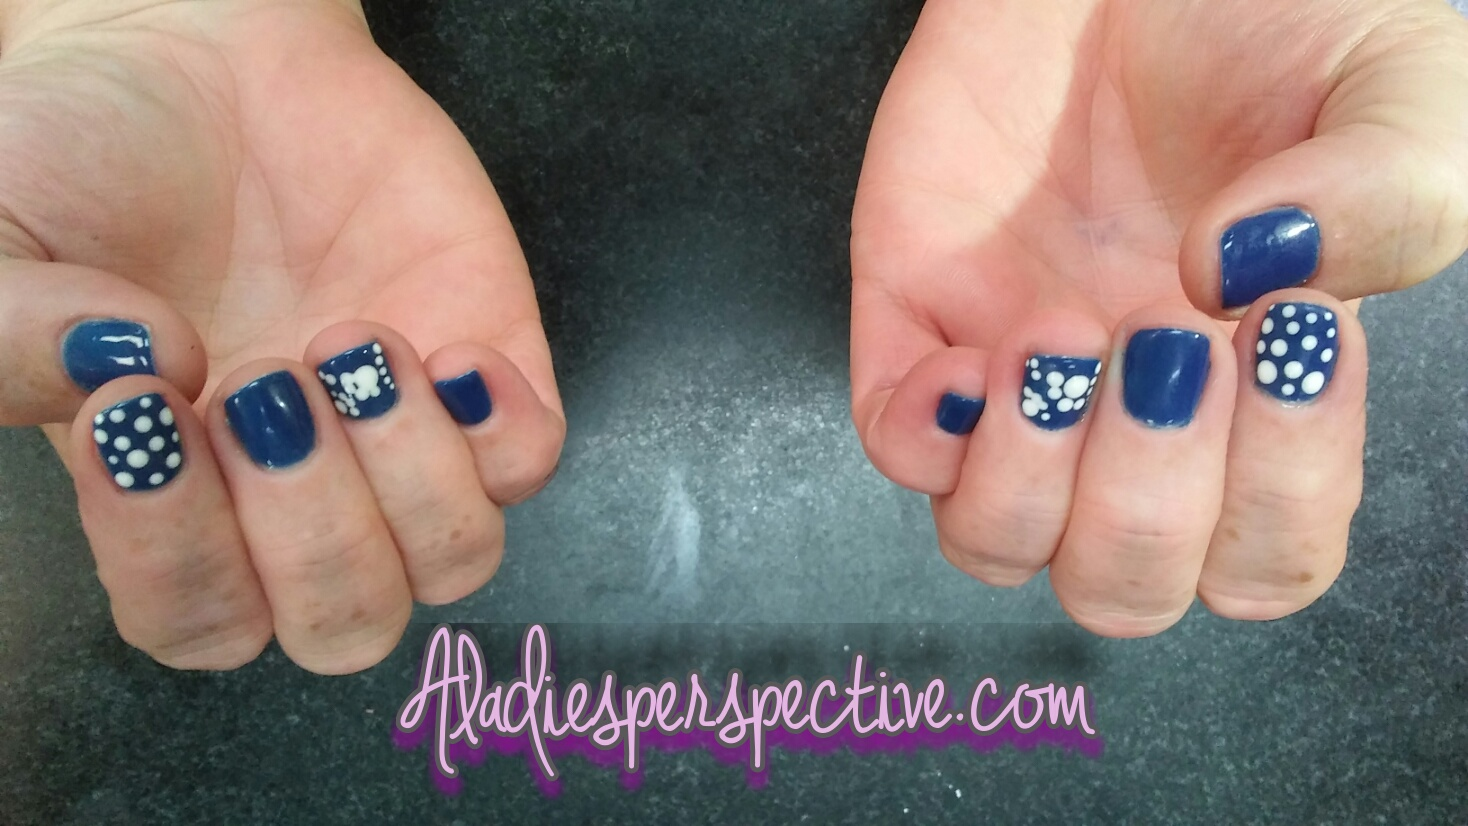 nails – A Ladies Perspective